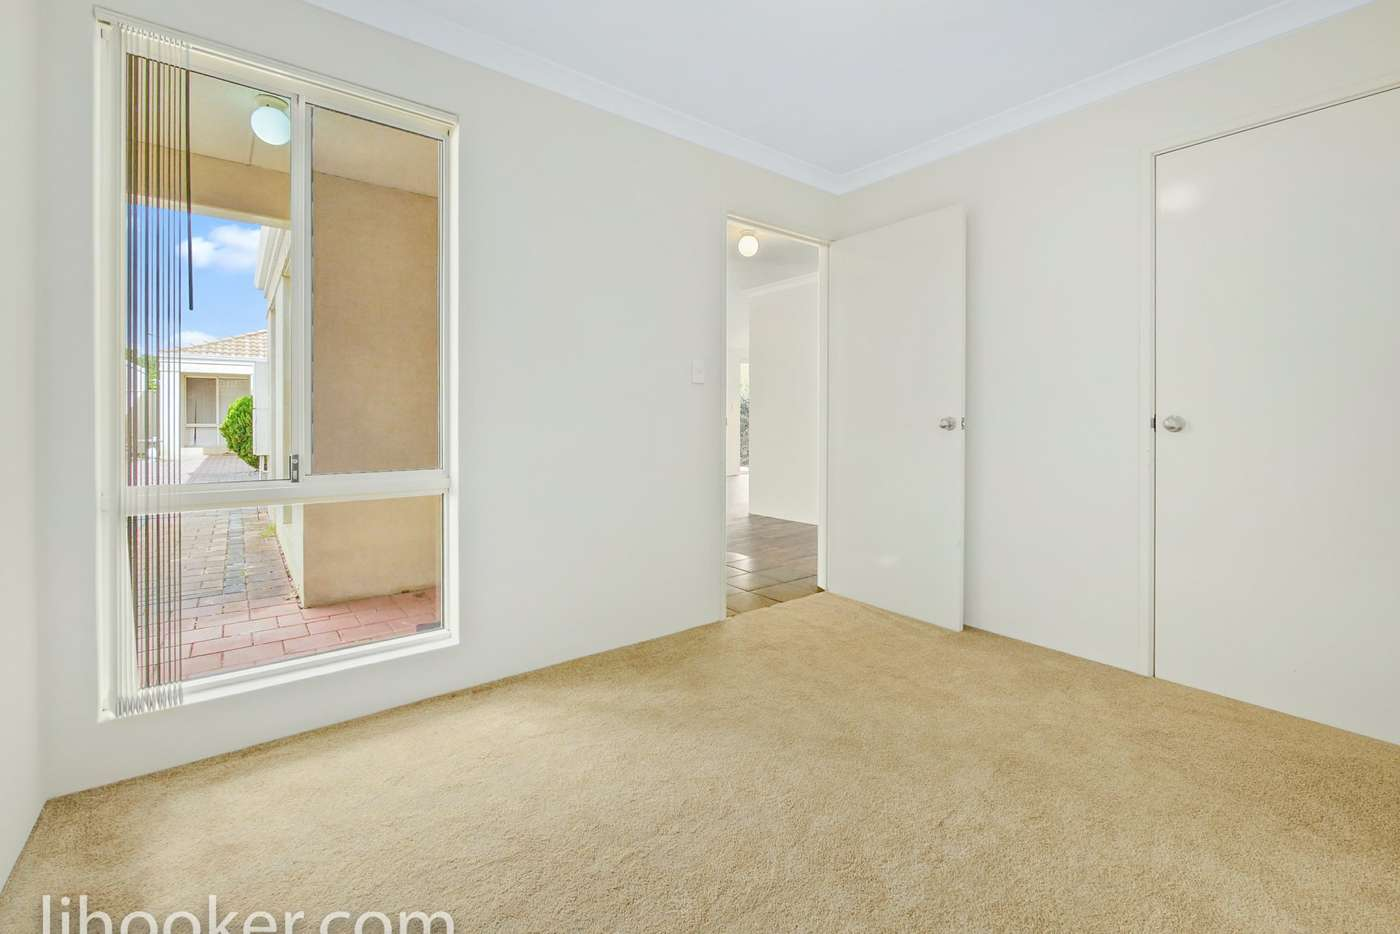 Sixth view of Homely villa listing, 8/2 Hobby Retreat, Queens Park WA 6107